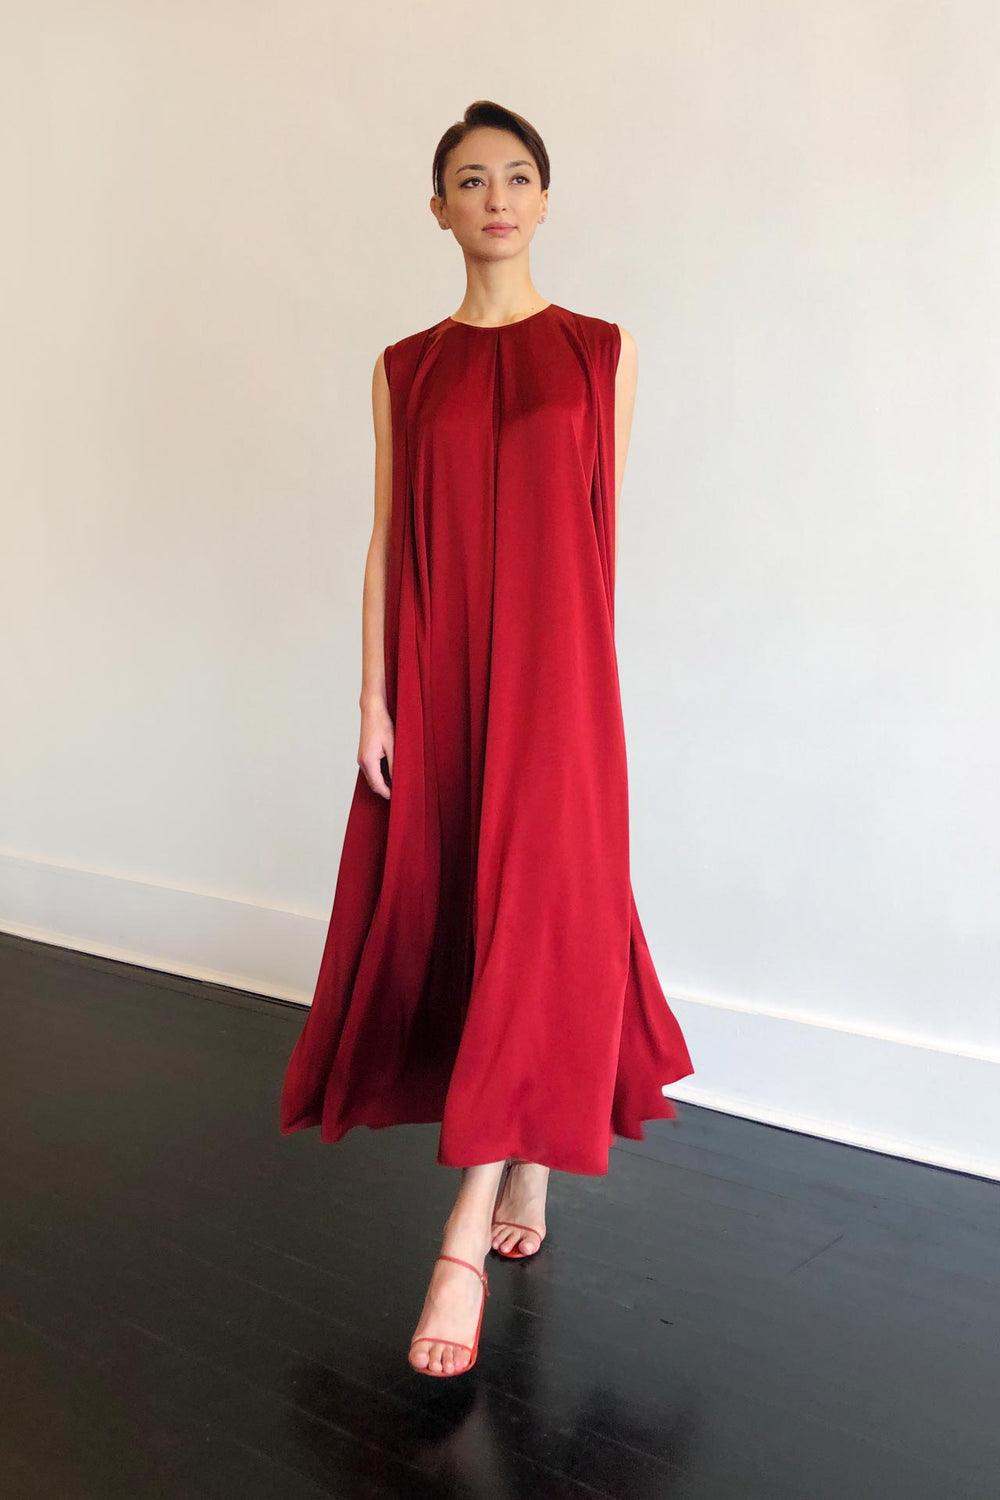 Fashion Designer CARL KAPP collection | Palm Onesize Fits All cocktail dress Red | Sydney Australia